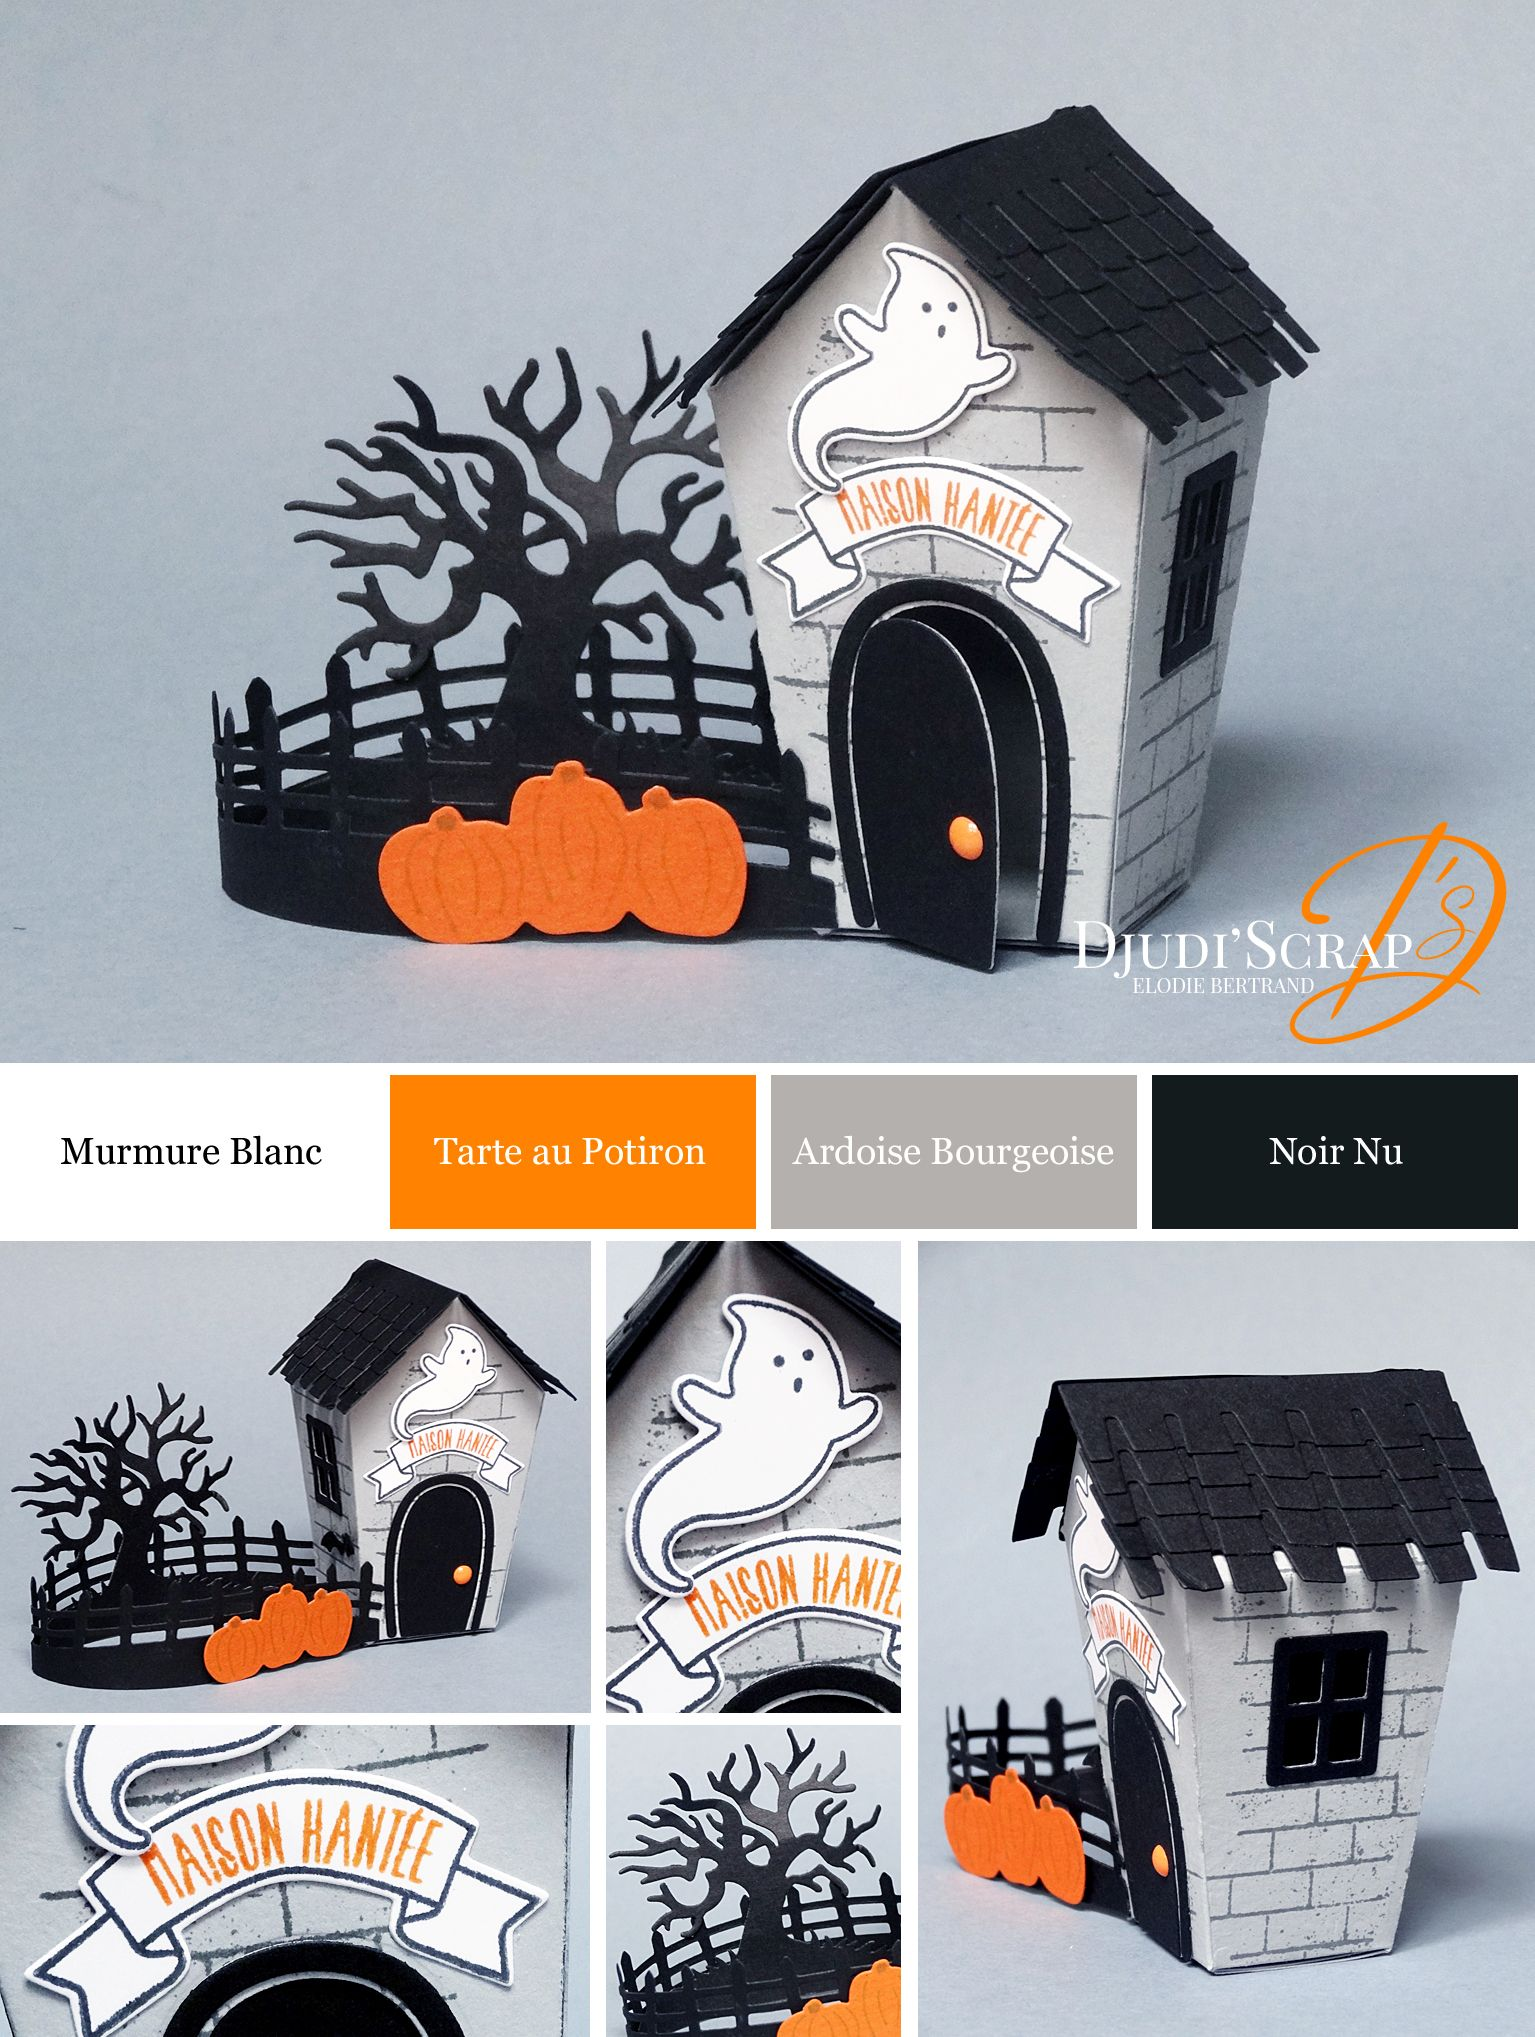 Djudi 39 scrap stampin 39 up d coration petite maison hant e - Decoration maison halloween ...